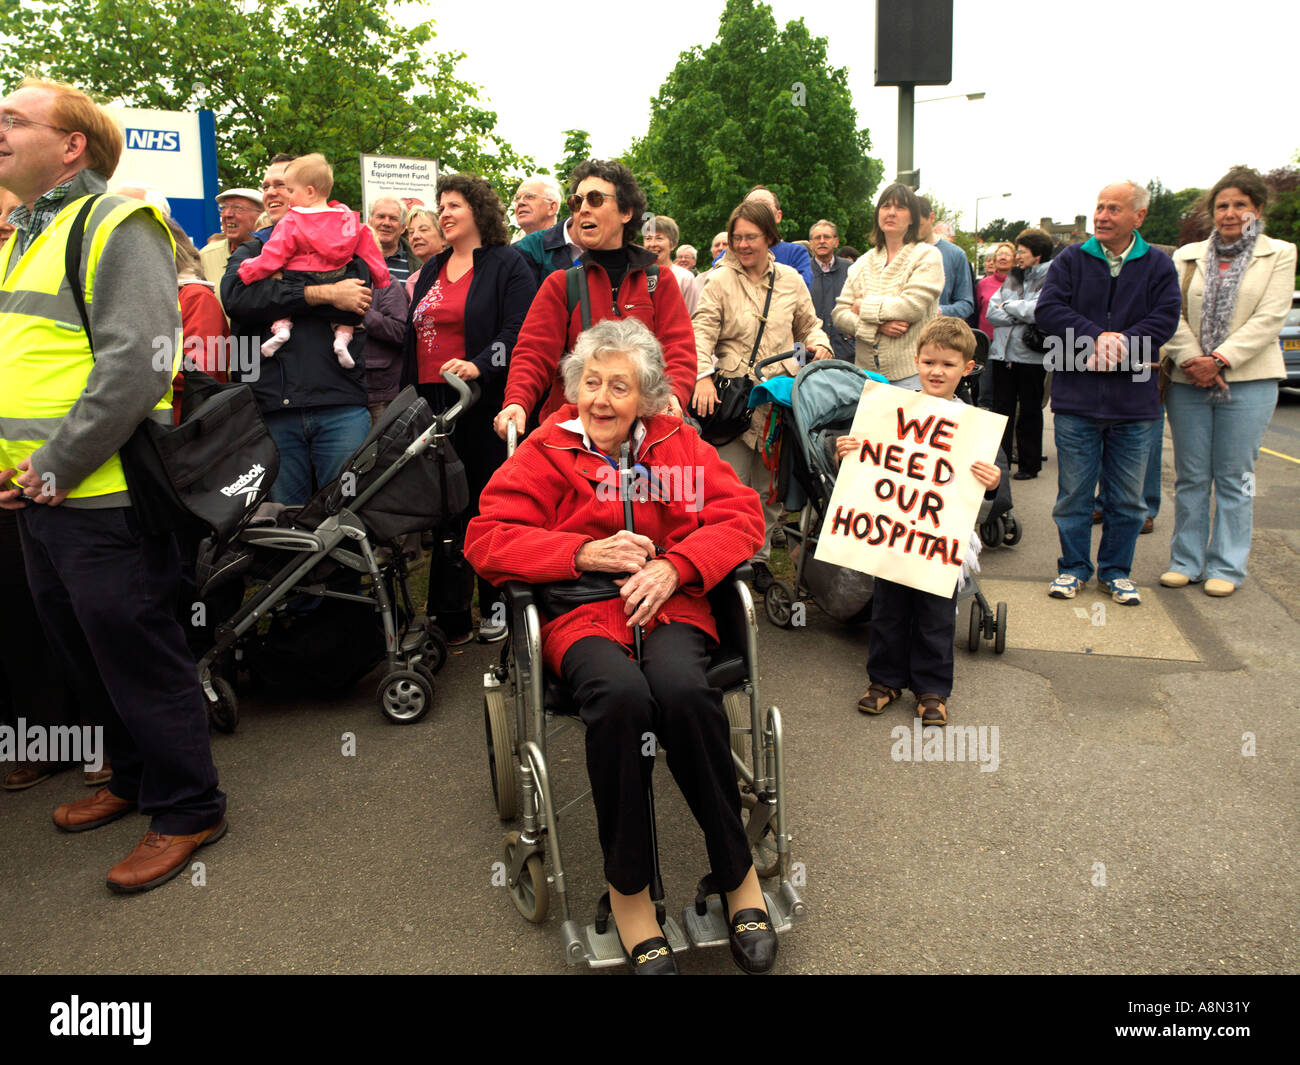 NHS Protest Against Hospital Closure Srewards Outside Epsom General Hospital Protester in Wheelchair NHS Trolley - Stock Image